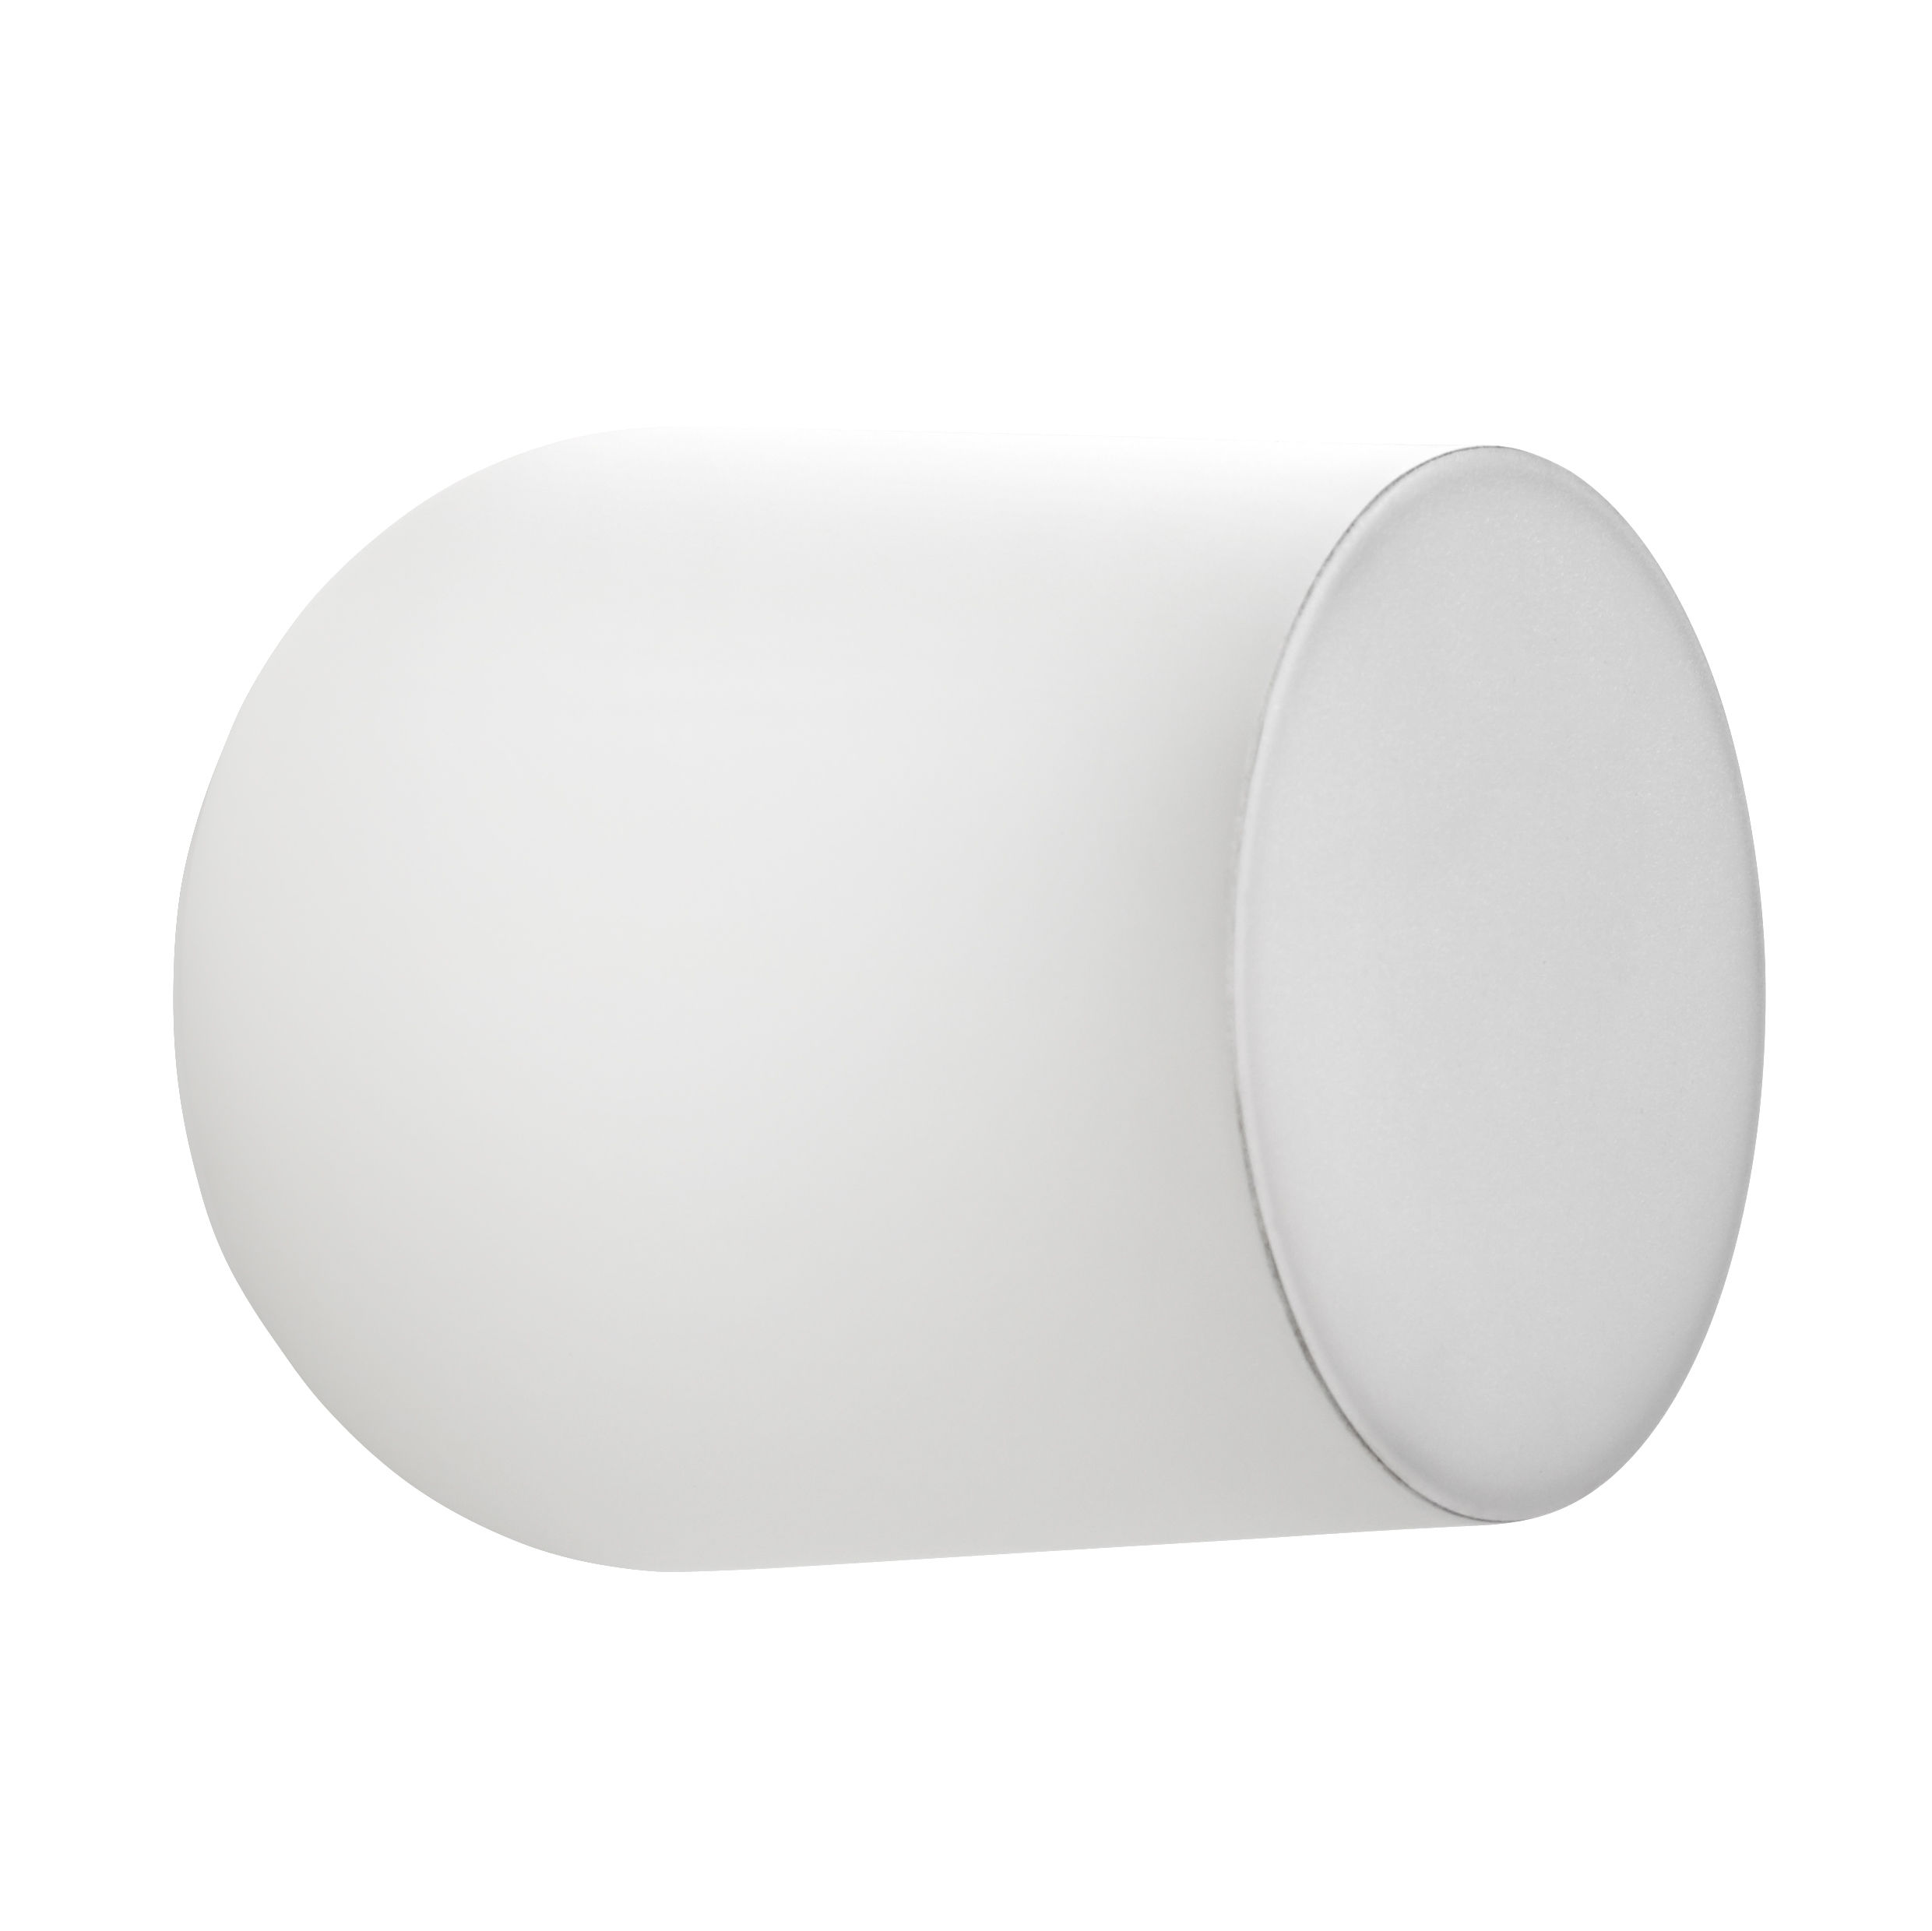 Lighting - Wall Lights - Passepartout JH10 Wall light - LED - Ø 15,5 x H 17 cm by &tradition - Matt white - Lacquered metal, Polycarbonate